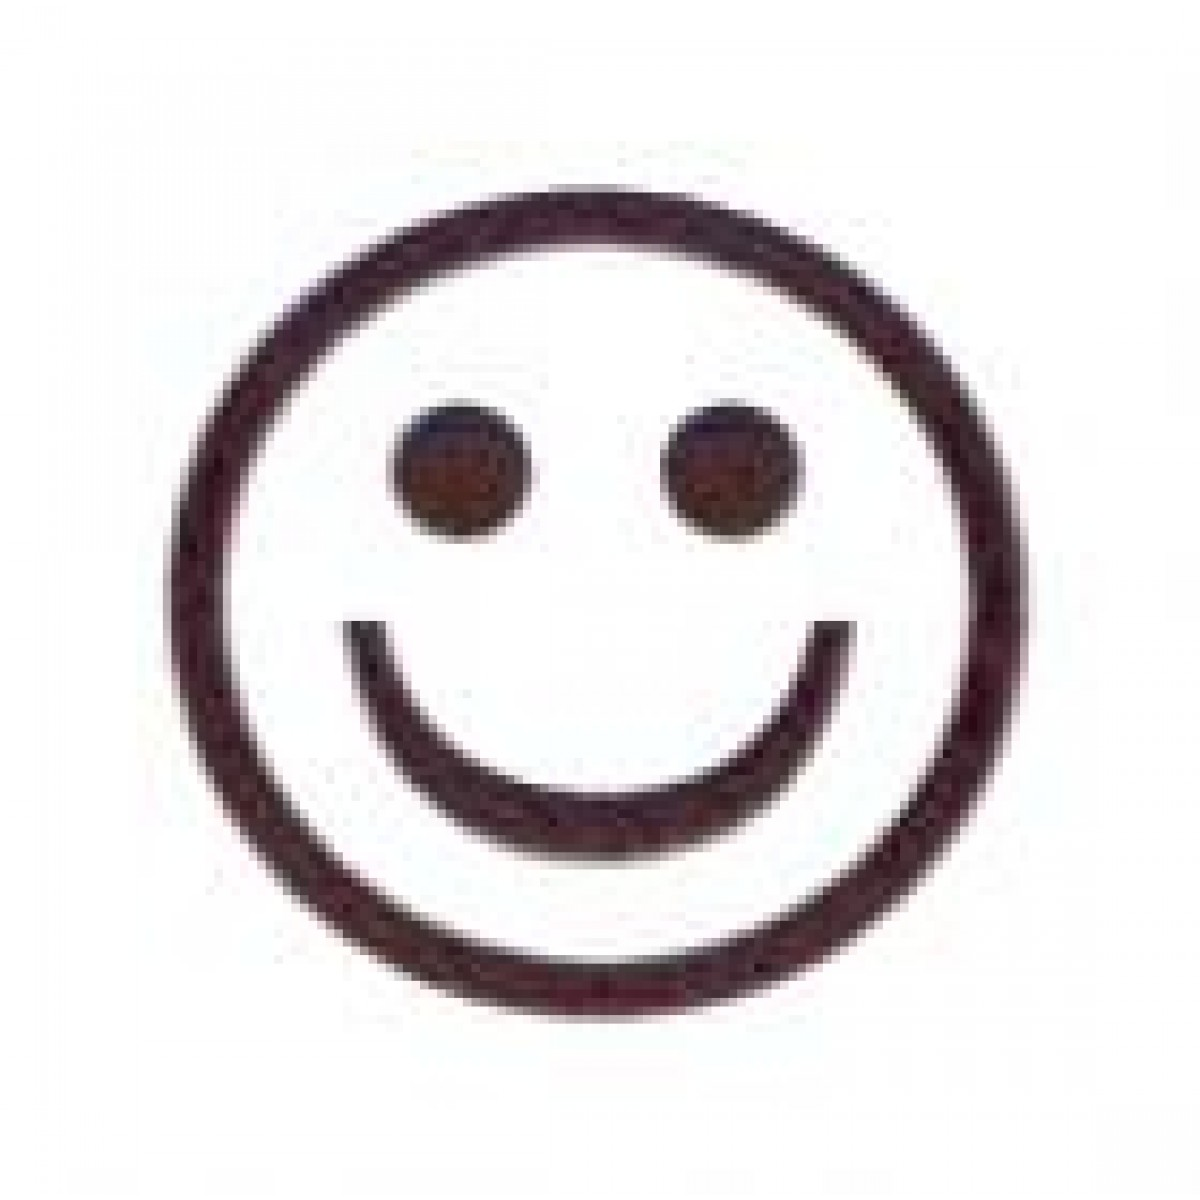 as8 small smiley face stamp teacher stamps